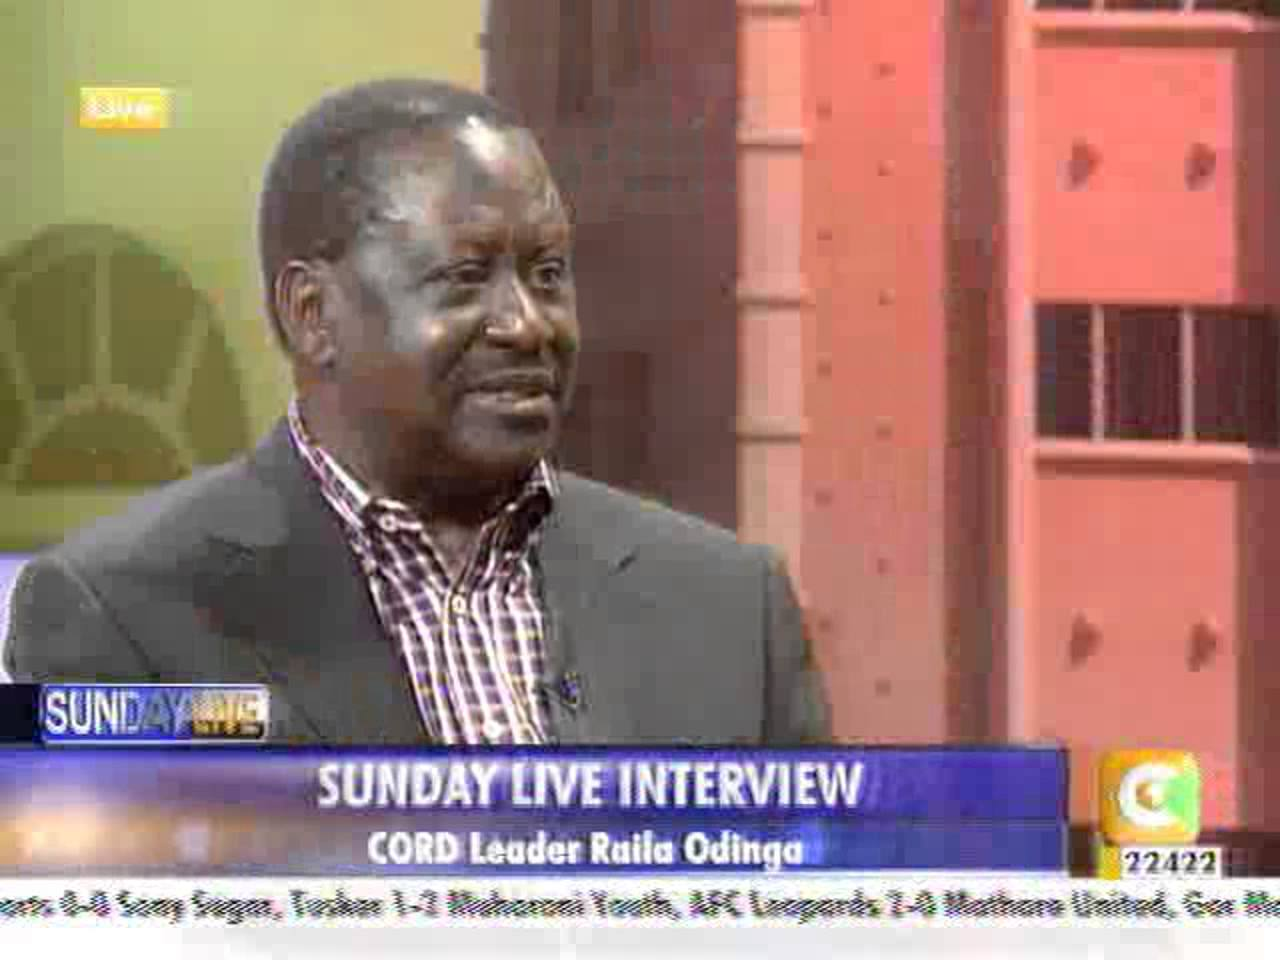 Prime Minister Raila Odinga's Interview With Julie Gichuru On Citizen TV's Sunday Live.